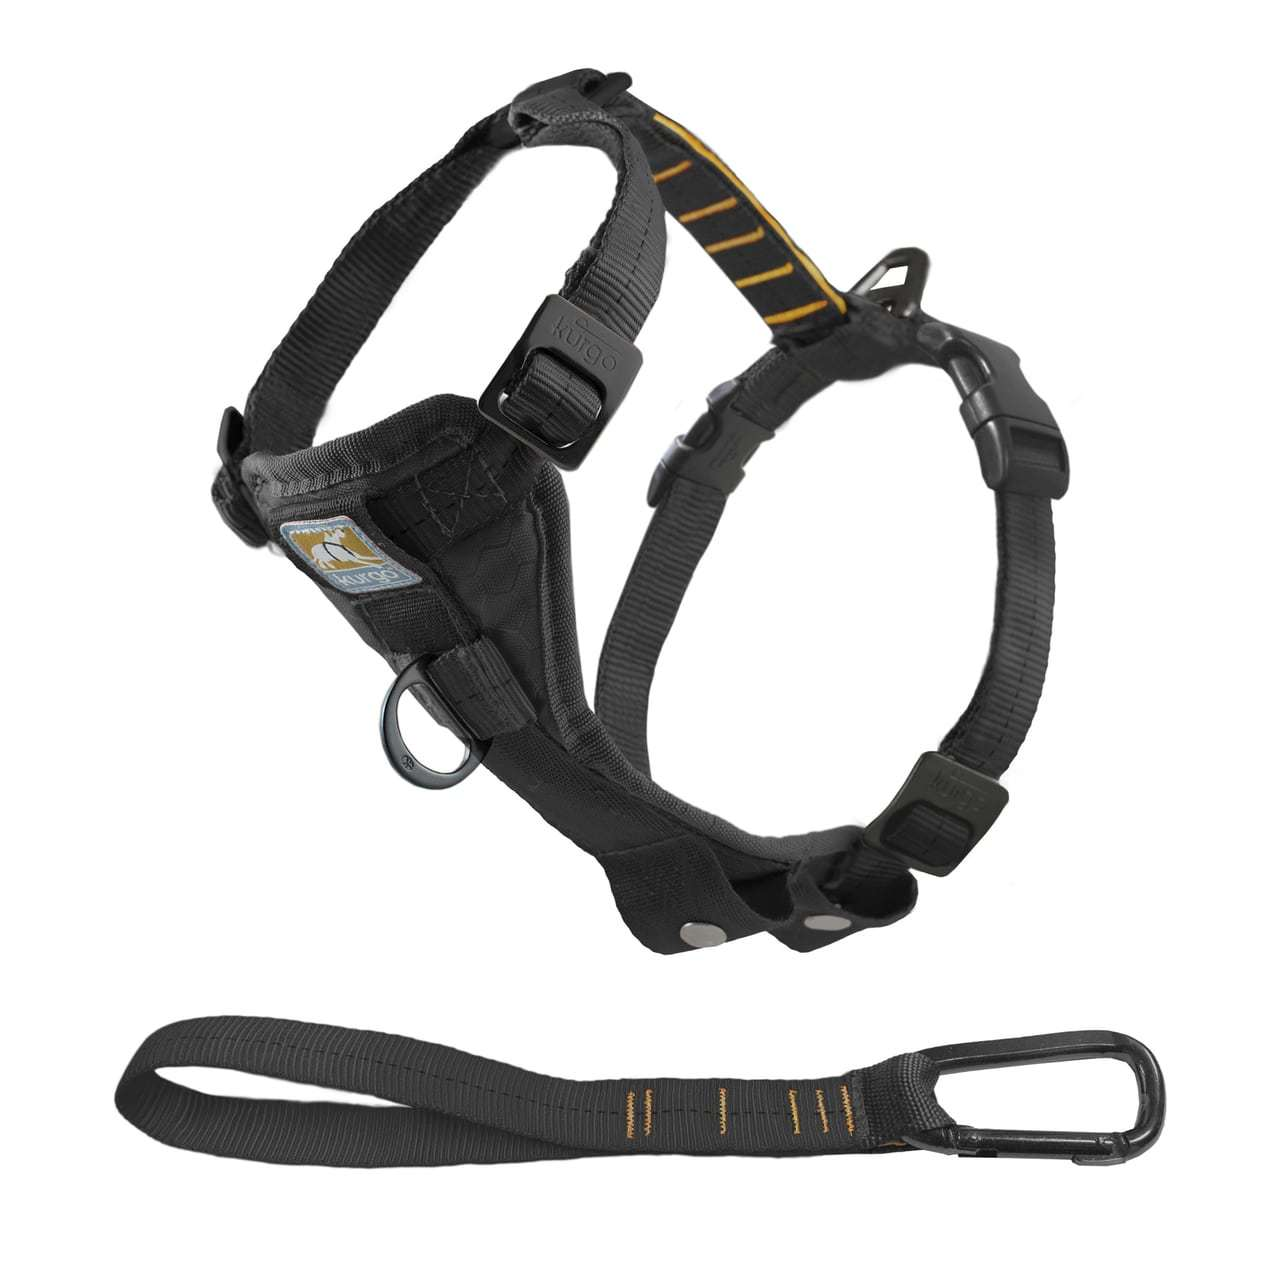 Kurgo Tru-Fit Smart Dog Walking Harness